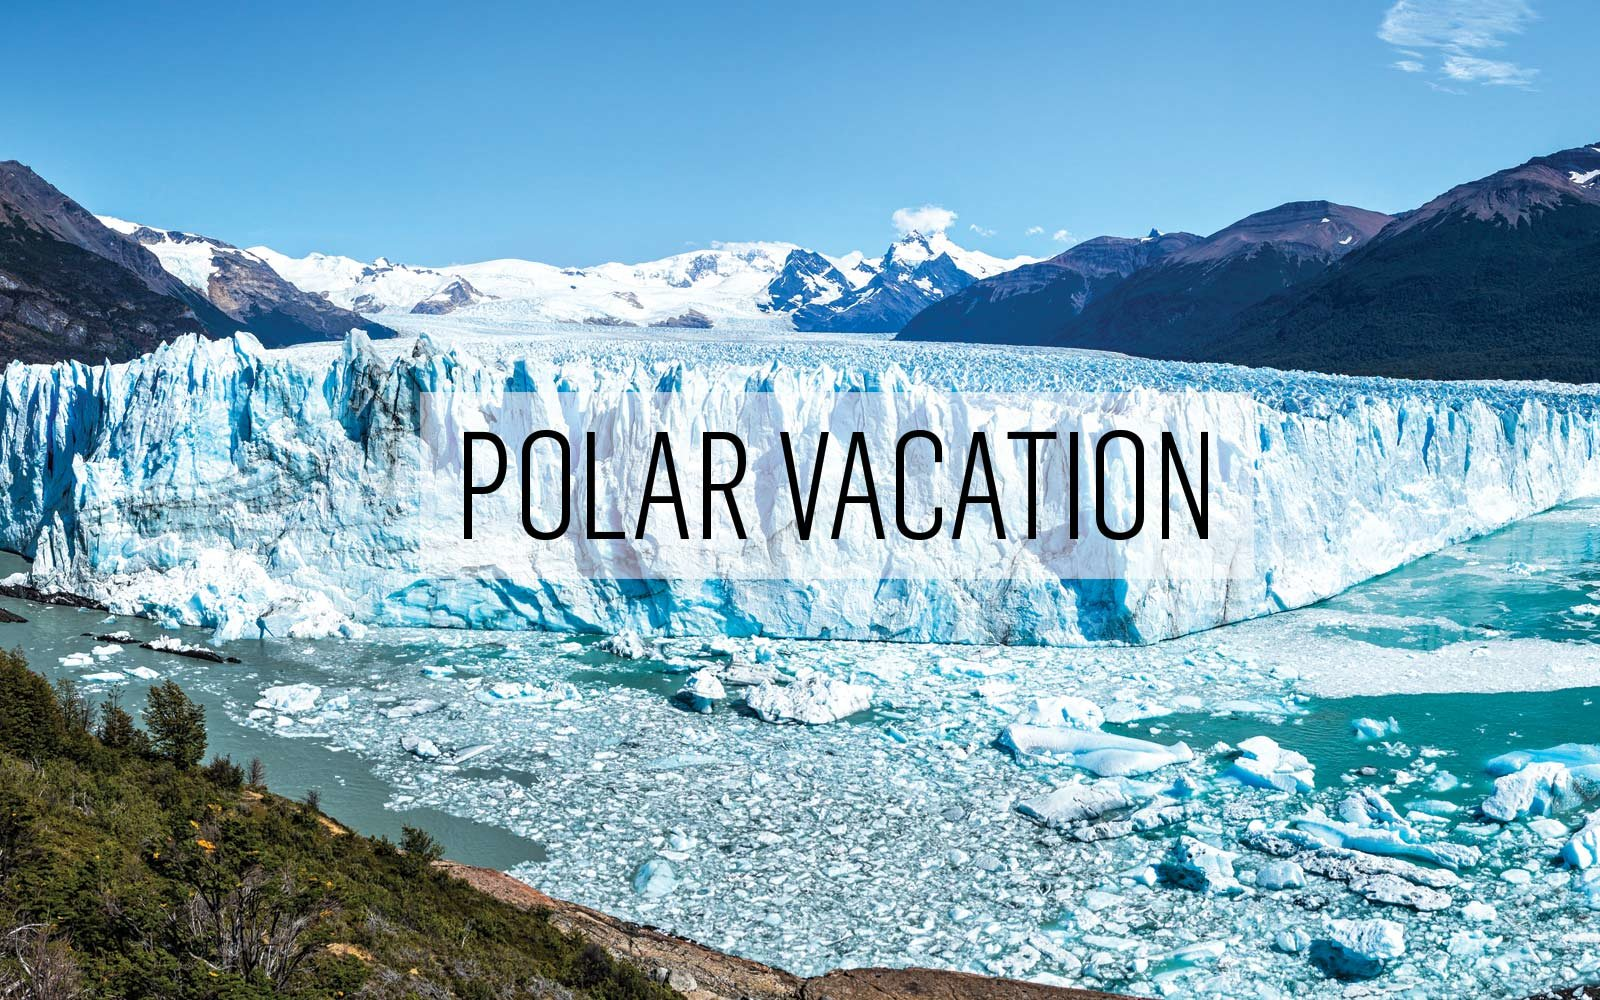 Polar Vacation